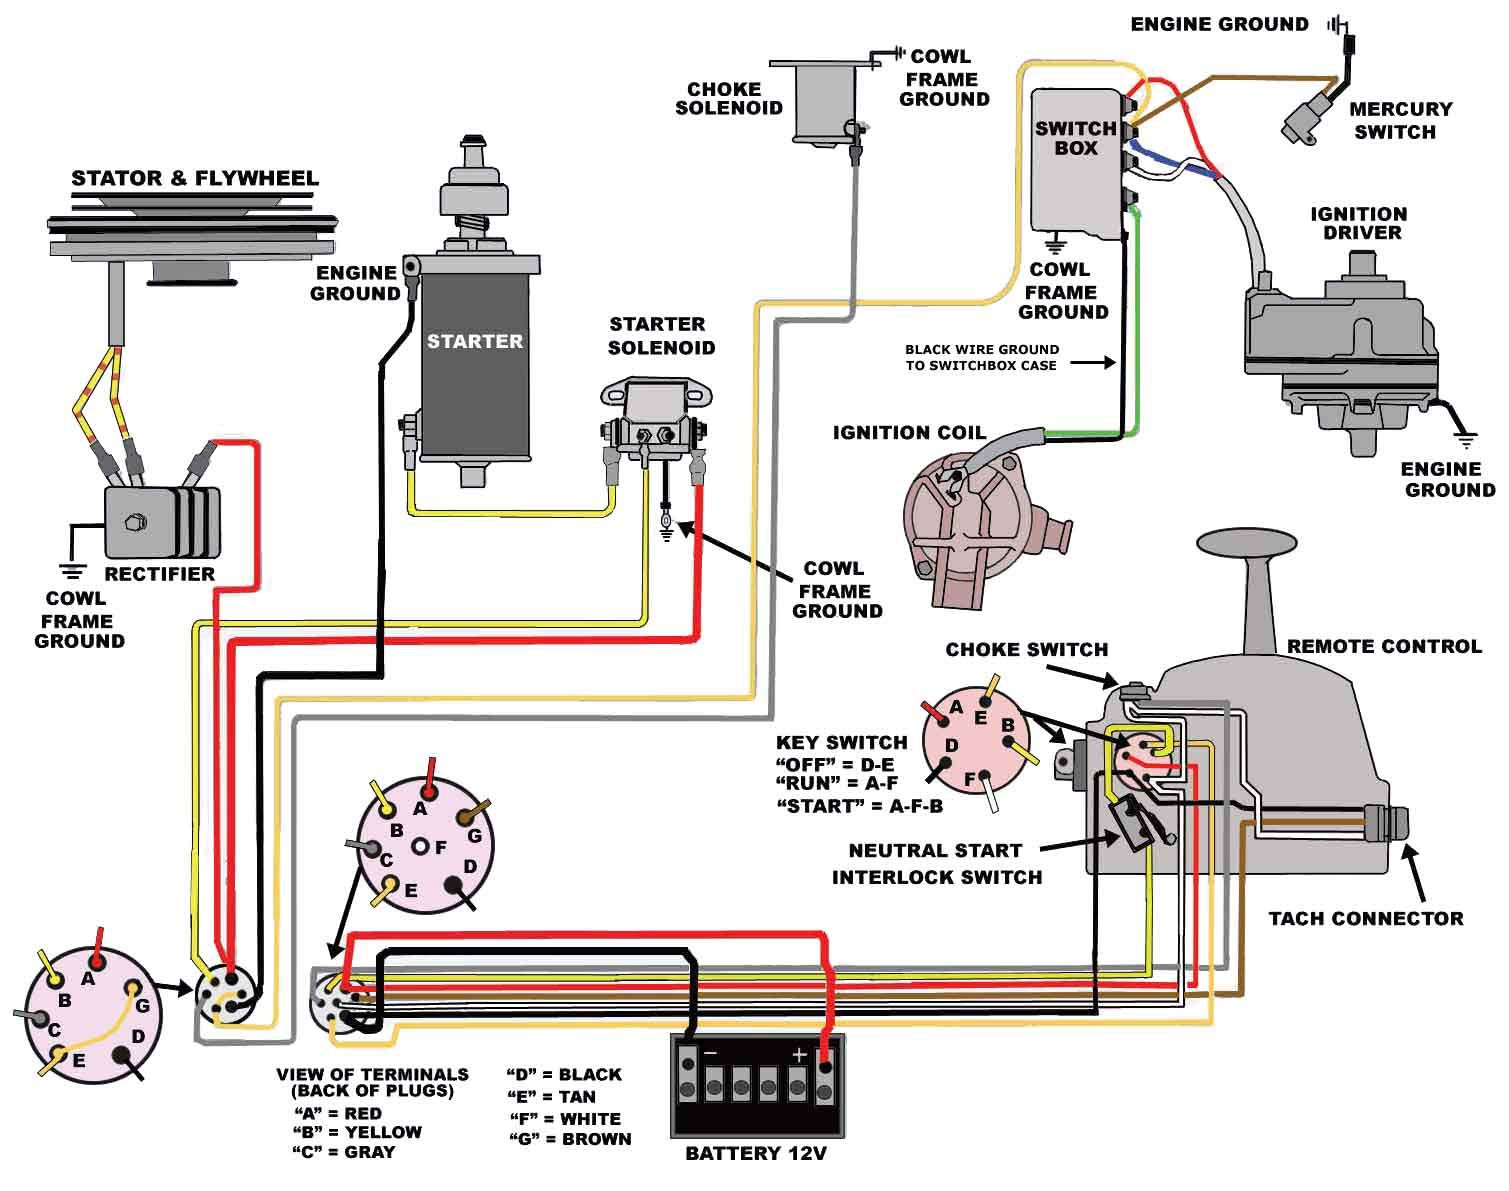 mercury wiring diagram wiring diagram blogs rh 4 11 2 restaurant freinsheimer hof de mercury force 40 hp wiring diagram mercury 40 hp 4 stroke wiring  [ 1509 x 1191 Pixel ]